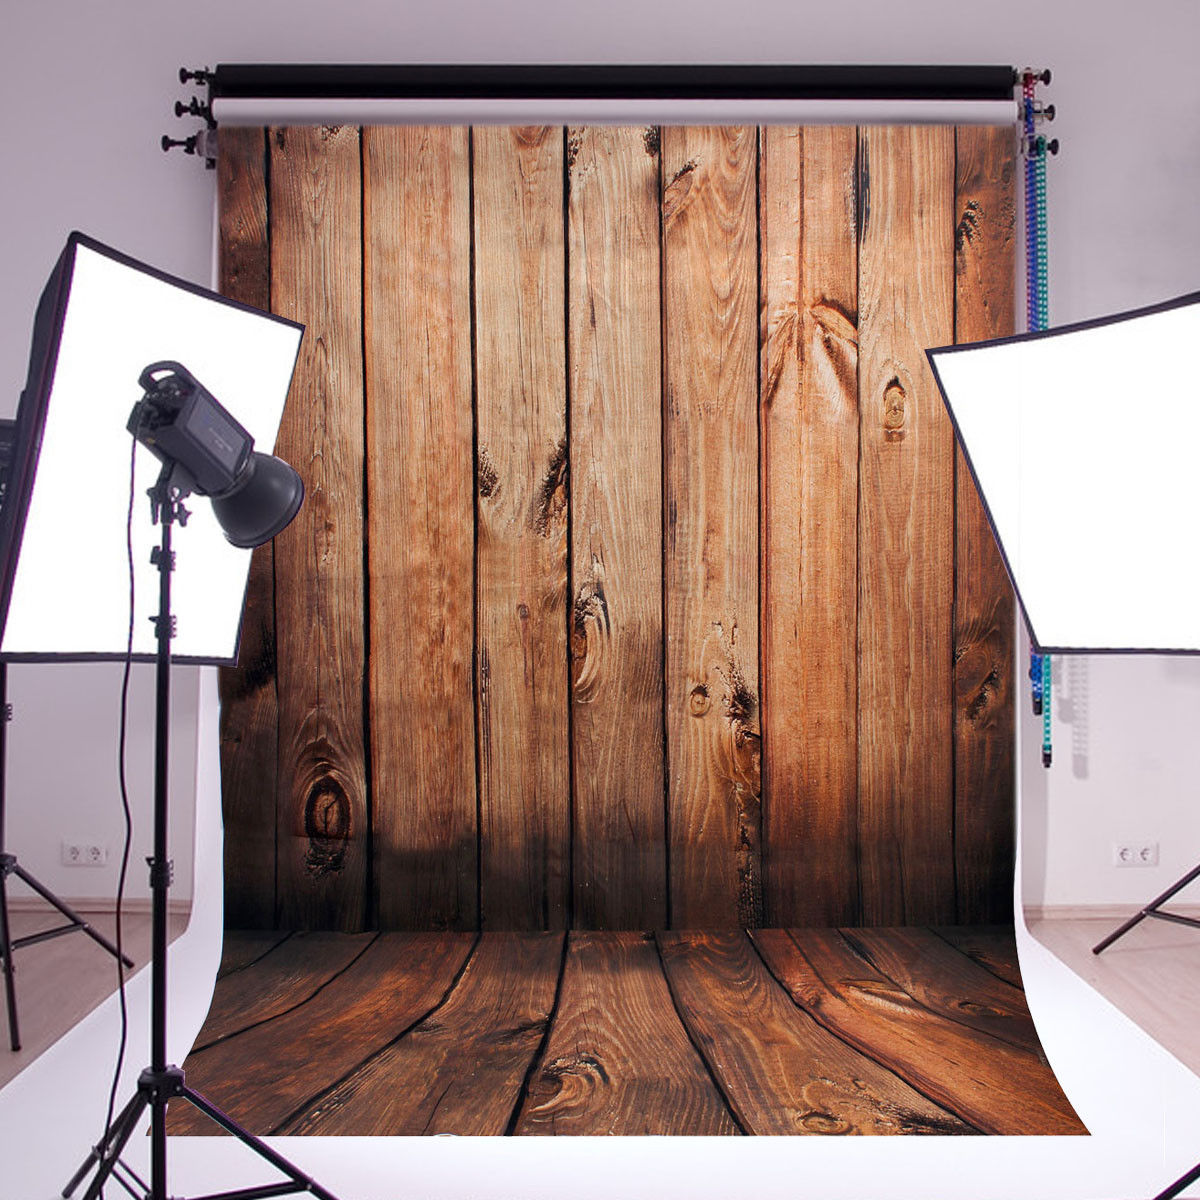 Photography Backdrops vinyl background for photo studio vintage wood baby background 2.1*1.5m Hot Sale easter day basket branch bunny photo studio background easter photography backdrops page 8